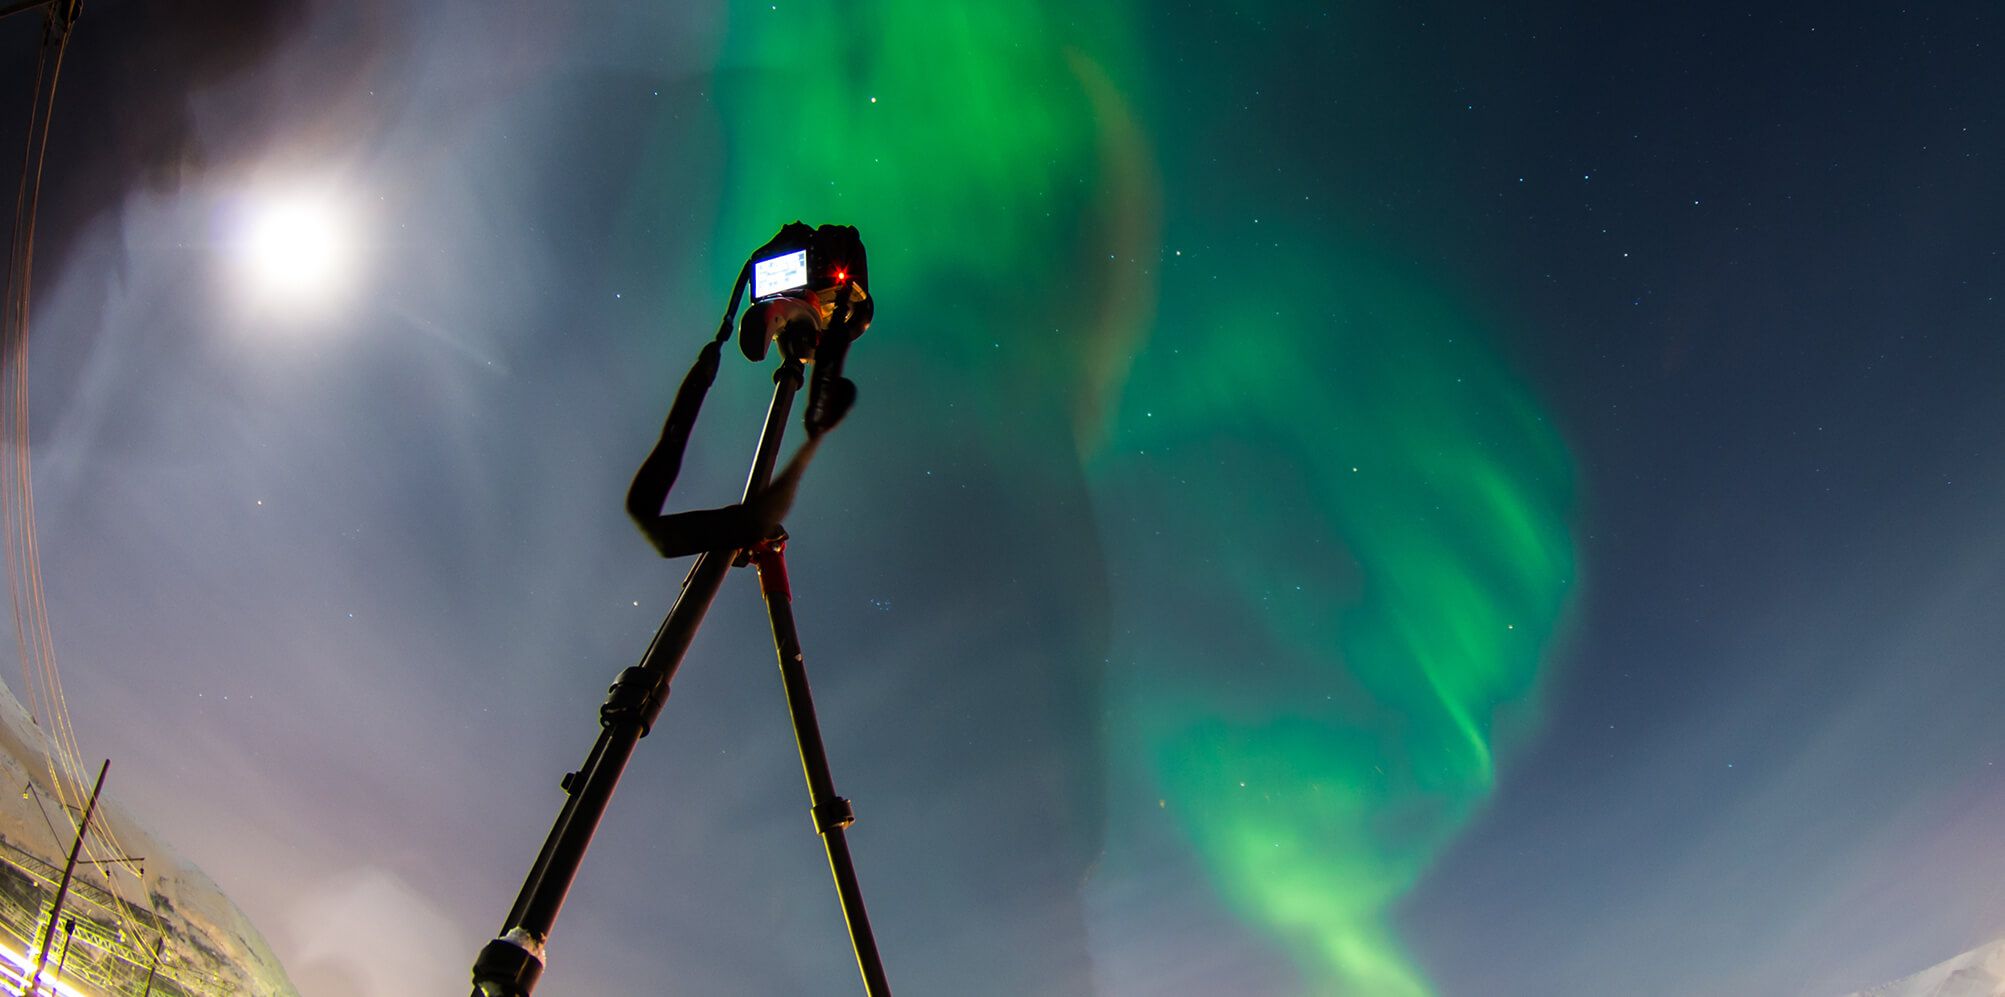 Camera on a tripod pointing up towards the night sky